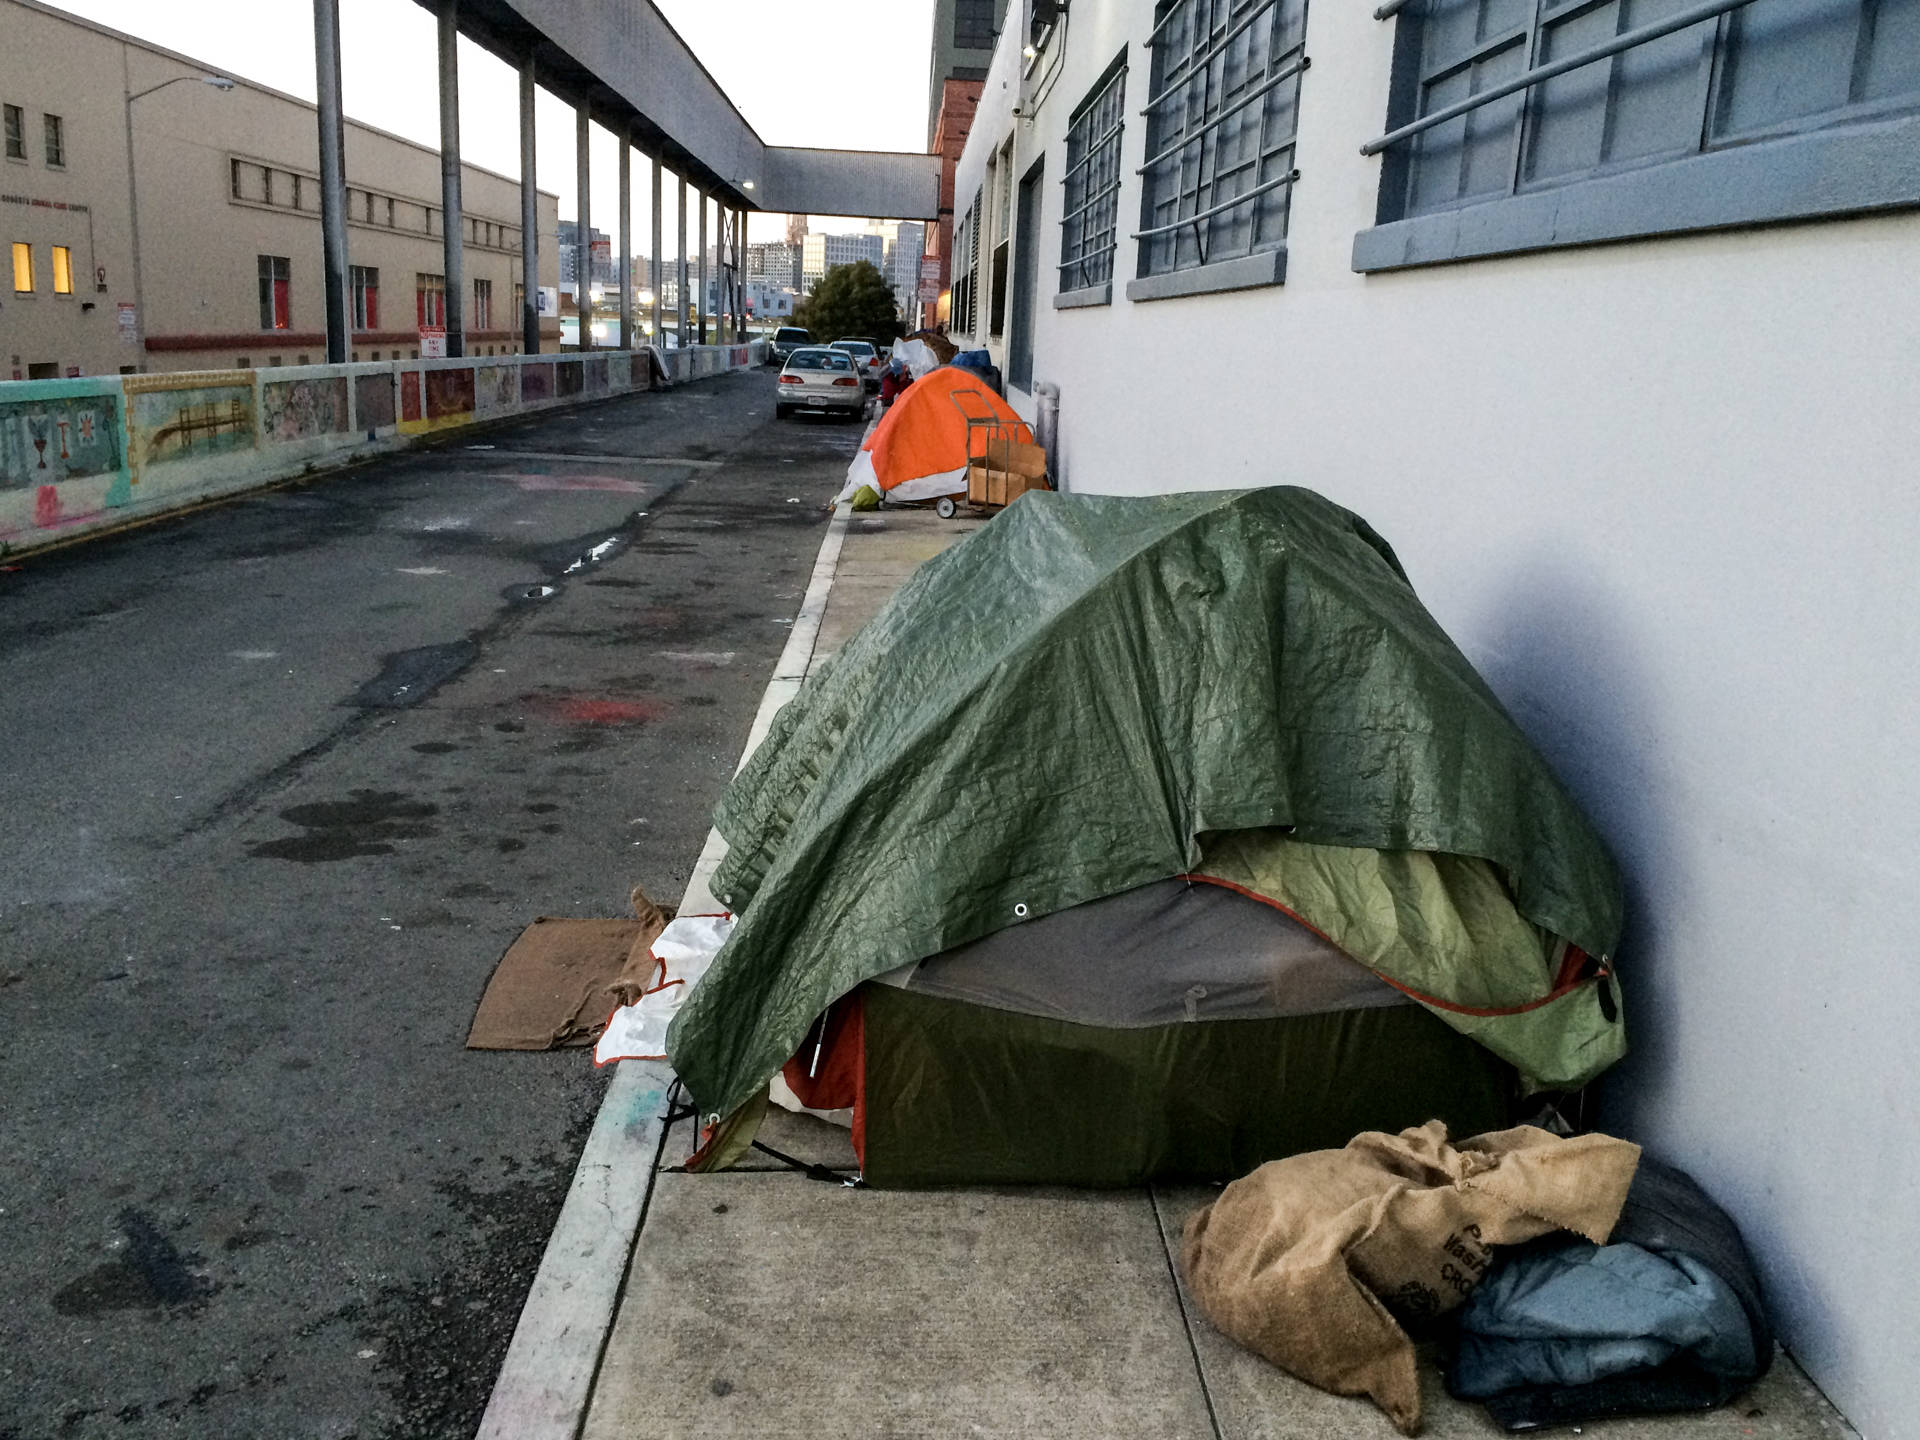 Tents pitched Monday night (March 7, 2016) on Florida Street, north of 16th Street, in northeastern corner of Mission District.